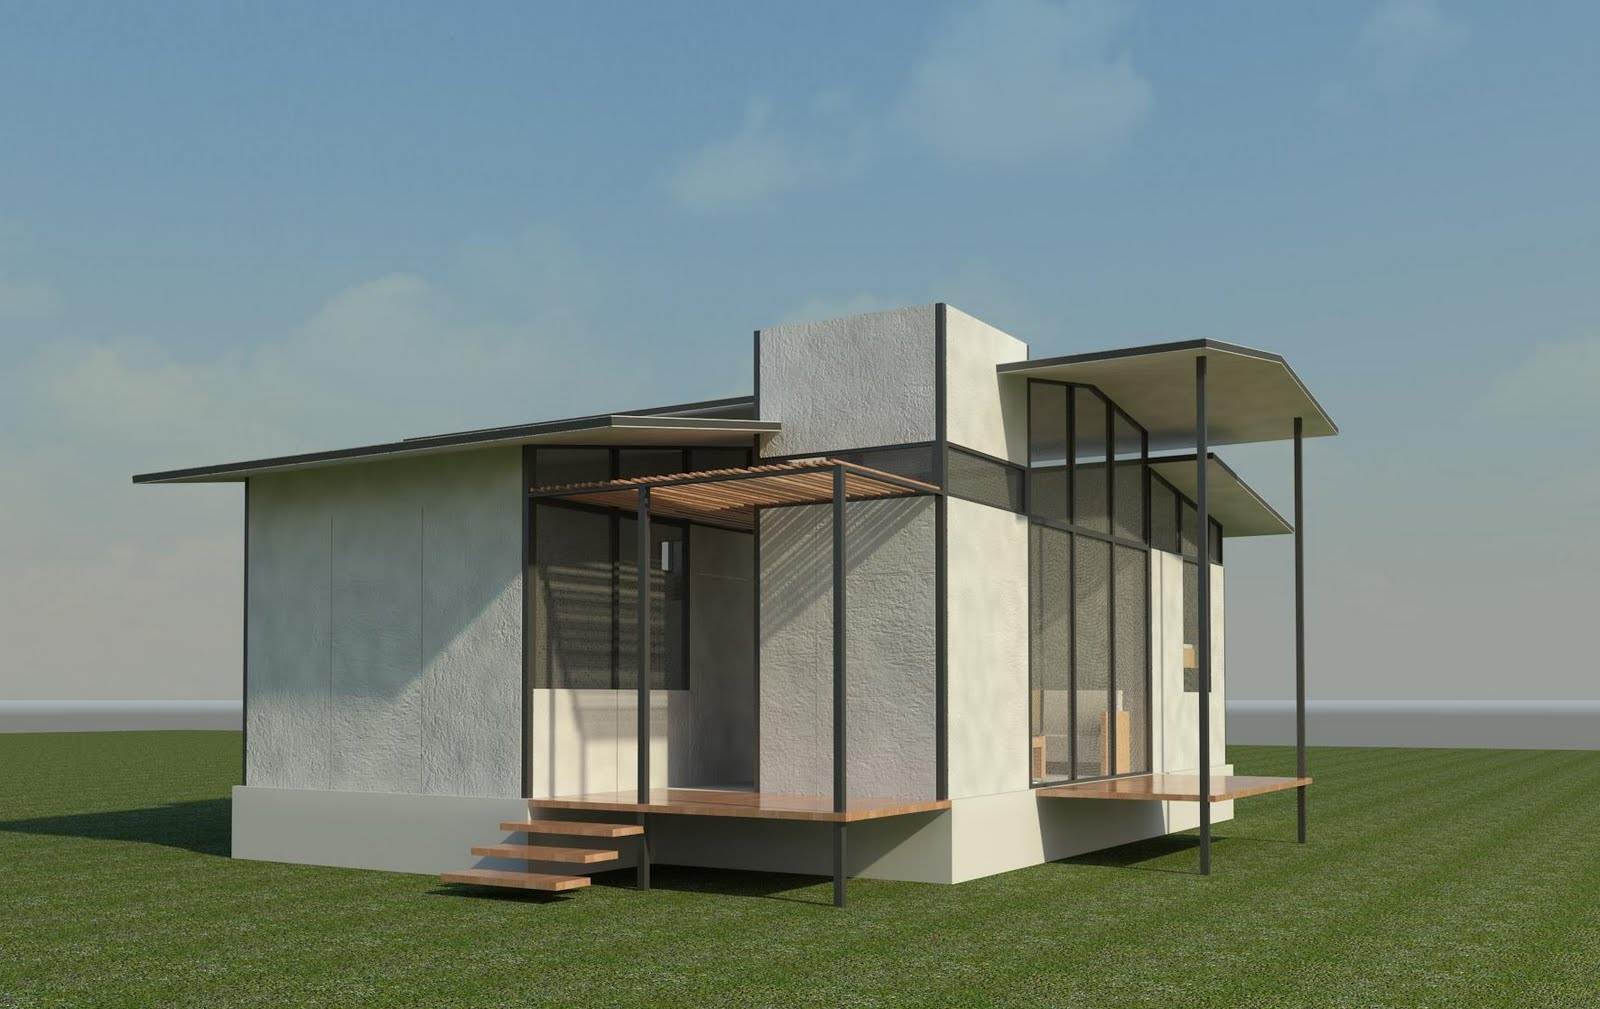 Greenvox vivienda sostenible for Estructura metalica vivienda